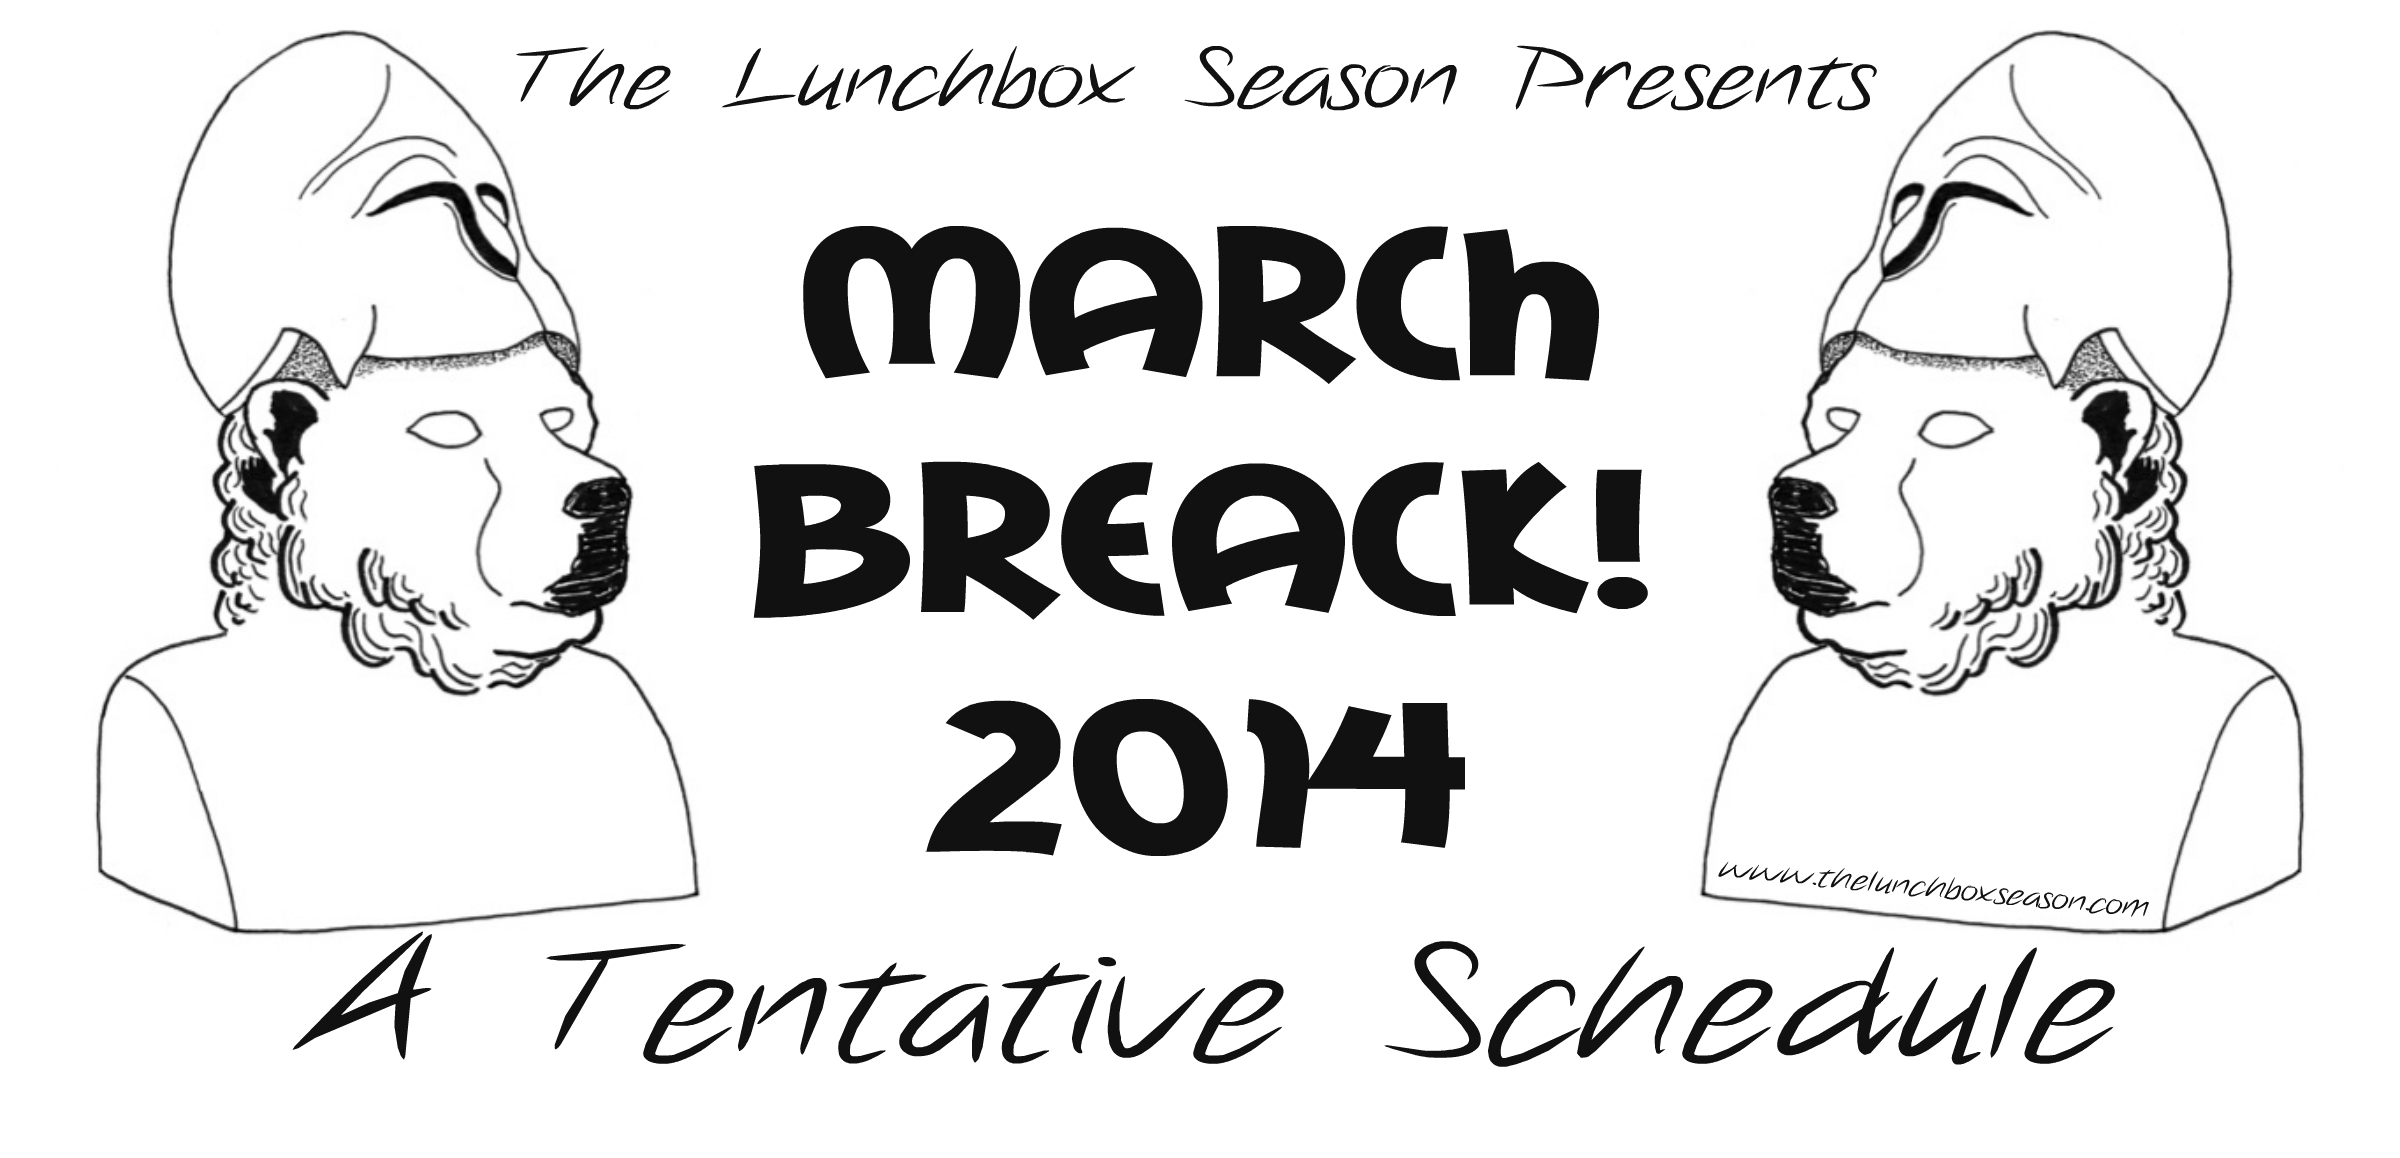 The lunchbox season Presents march breaACK! 2014 a Tentative Schedule